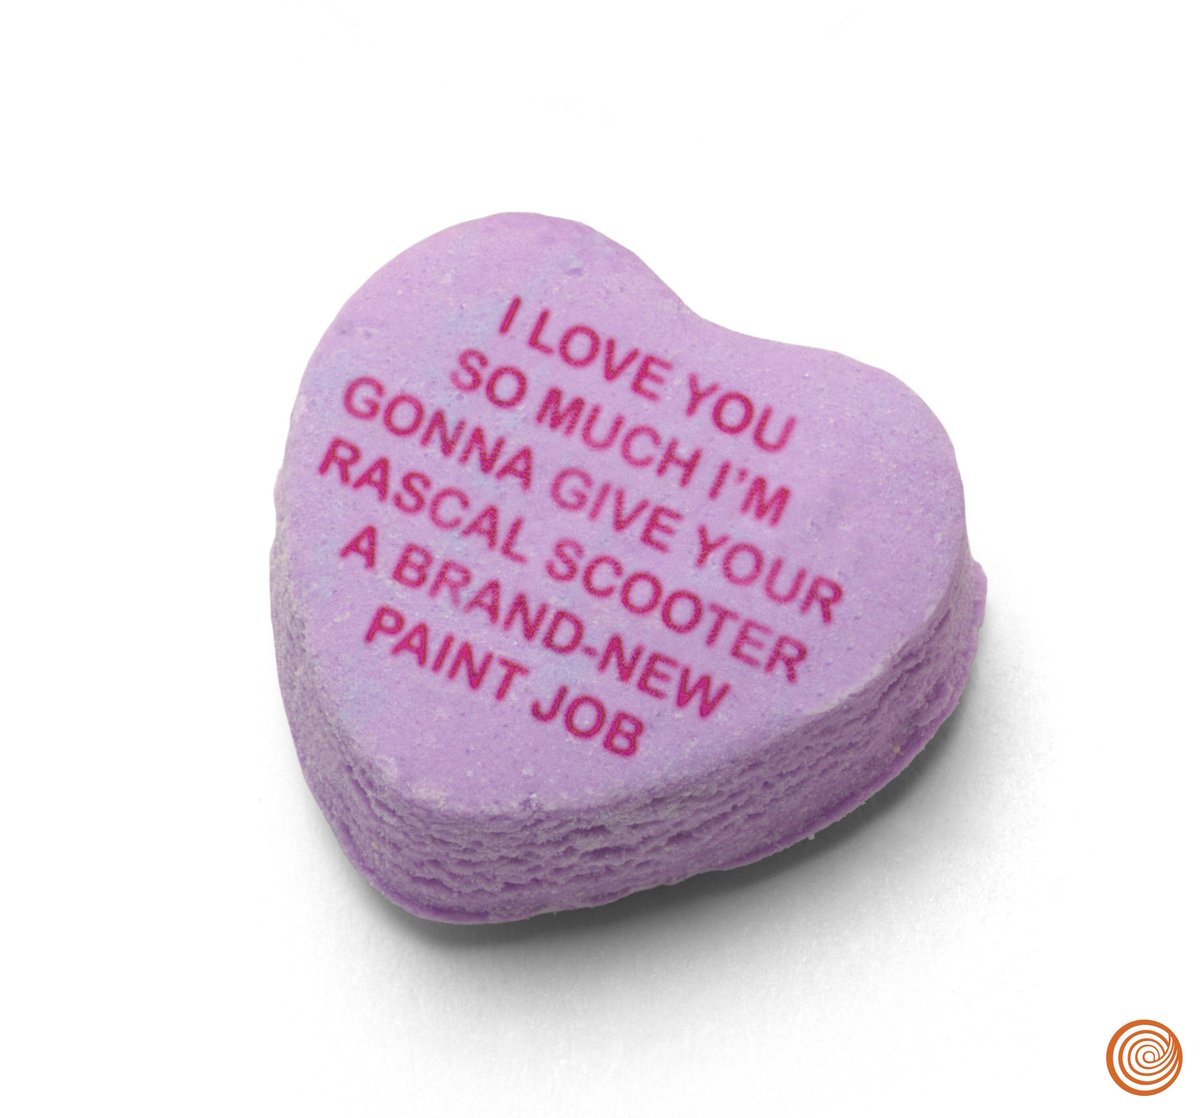 Share this Valentine's Day message with someone you love!